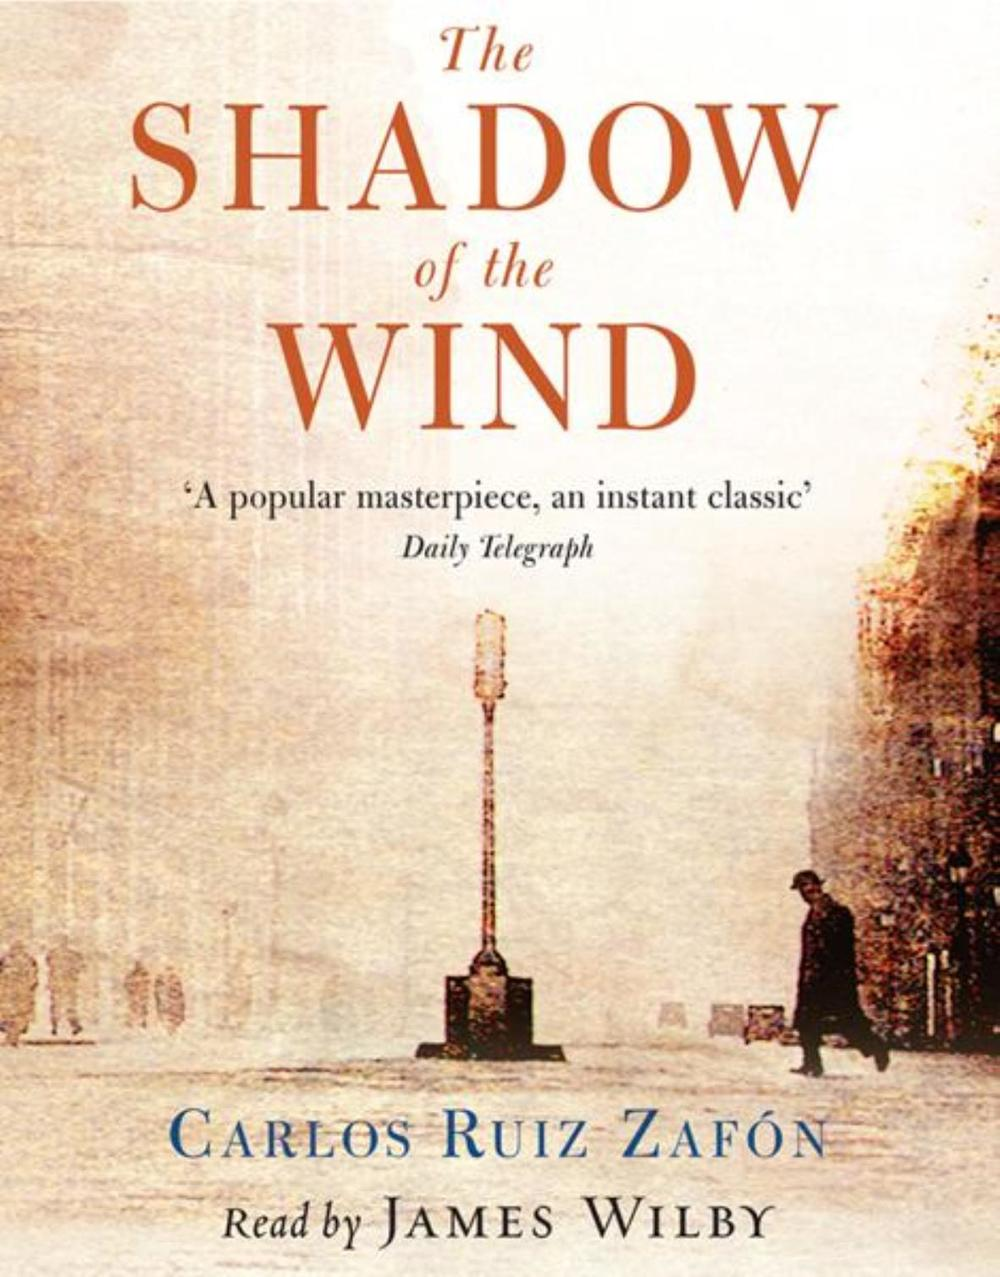 The Shadow of the Wind by Carlos Ruiz Zafon | Reviewed on Clear Eyes, Full Shelves